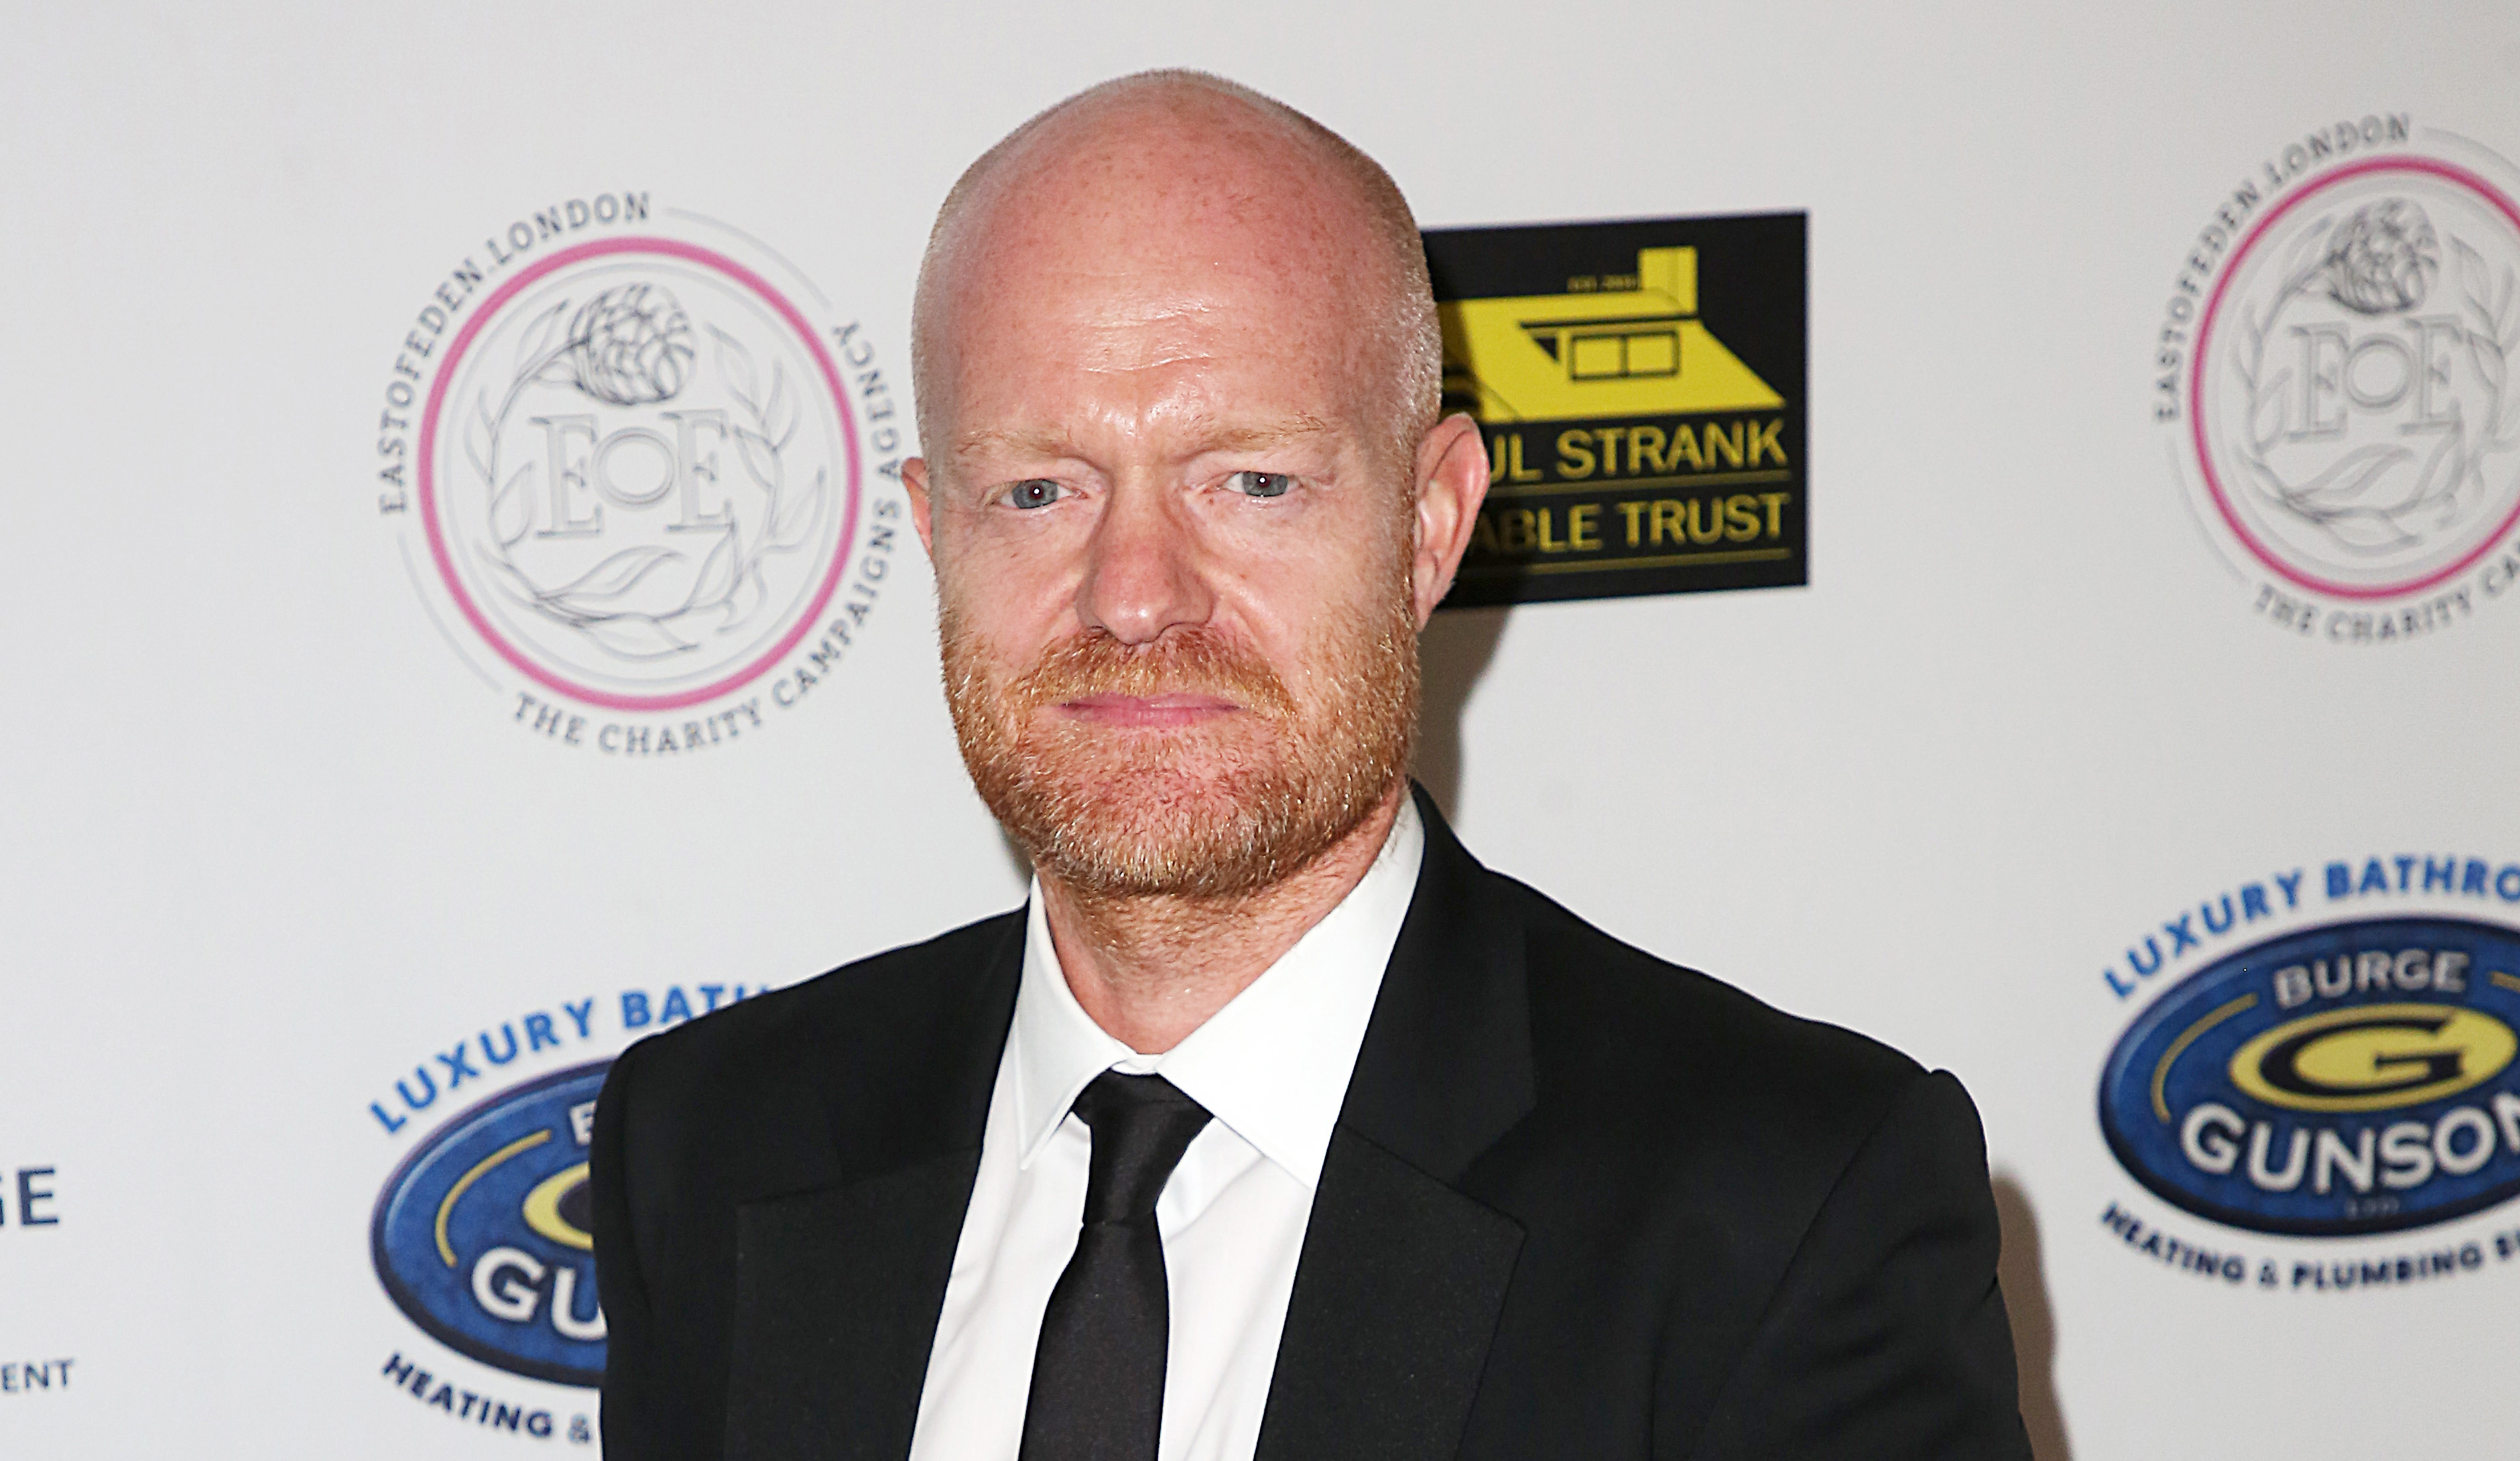 EastEnders' Jake Wood shares sweet family snap of wife and son